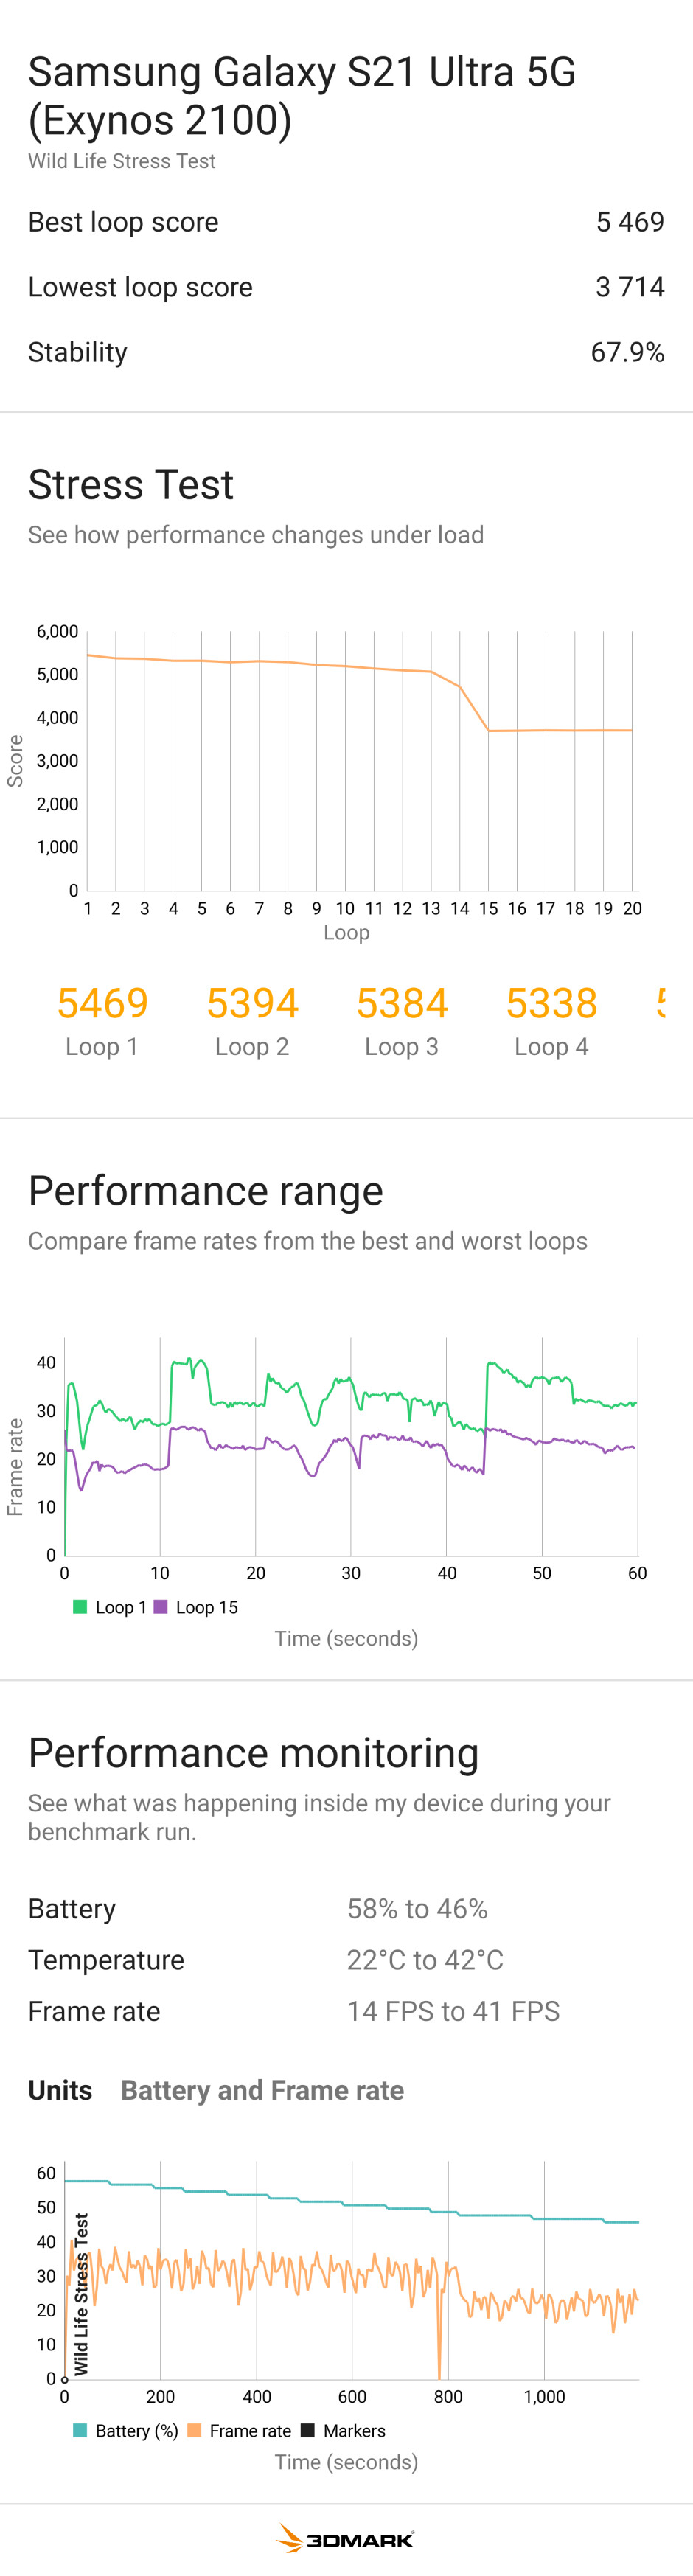 Galaxy S21 Ultra with Exynos 2100 - PhoneArena Performance Benchmark Test Results